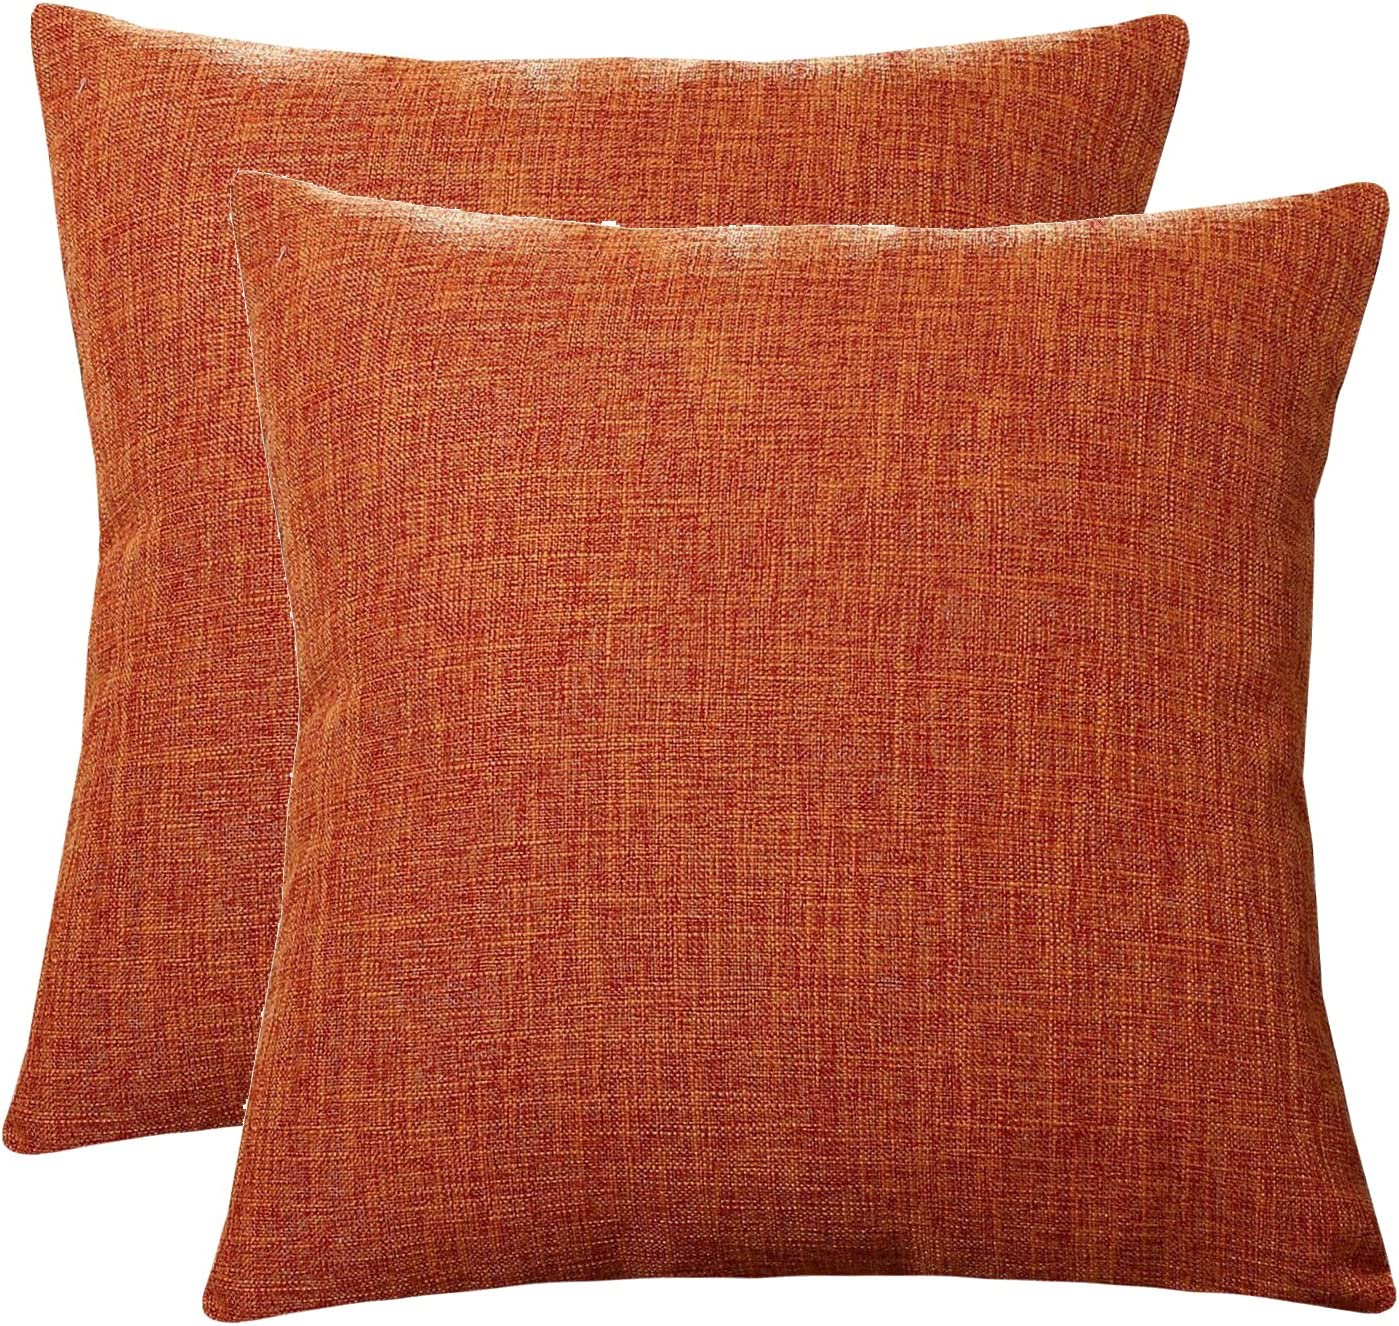 Rust E by design Decorative Pillow Ivory